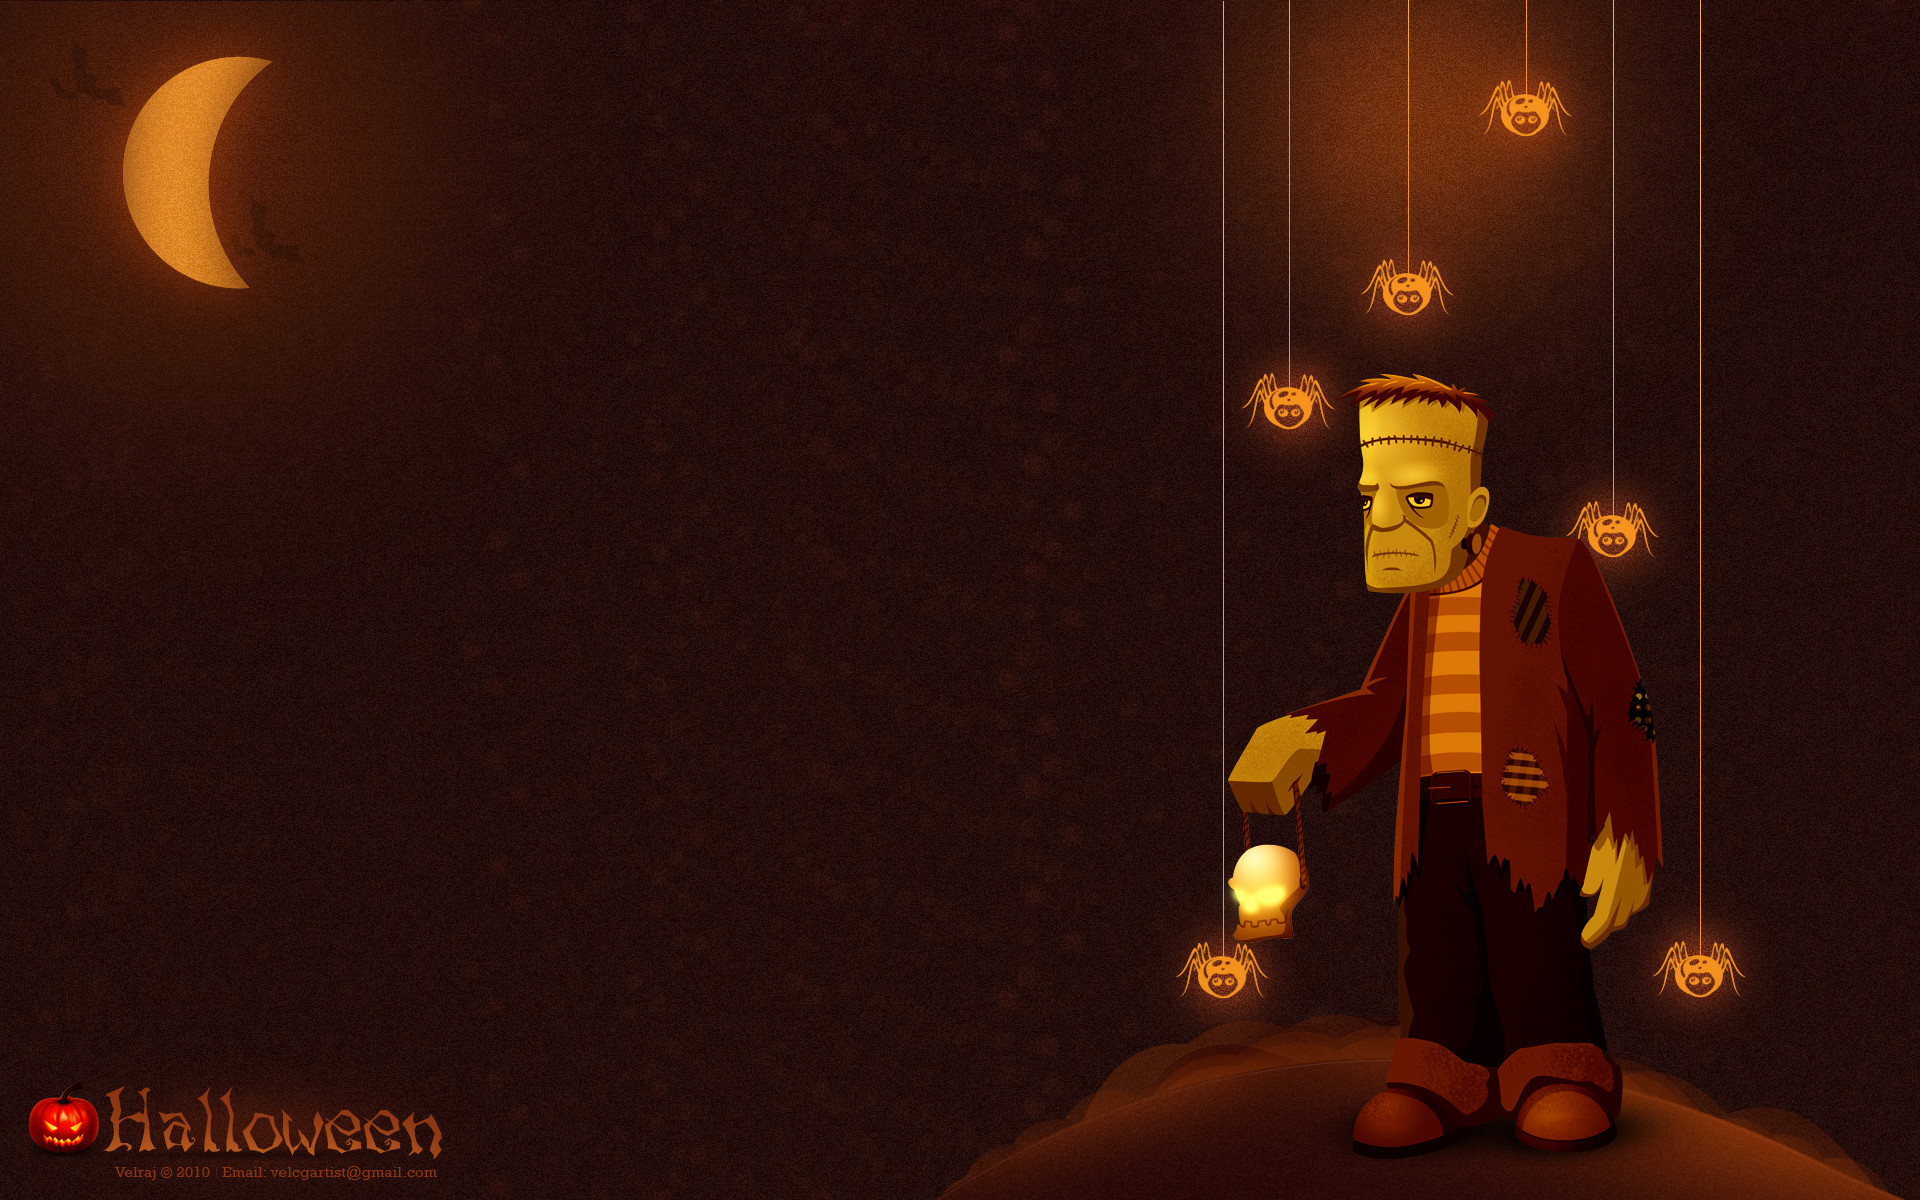 Scary Halloween Hd Wallpaper Addams Family Lurch Horror Wallpapers For .